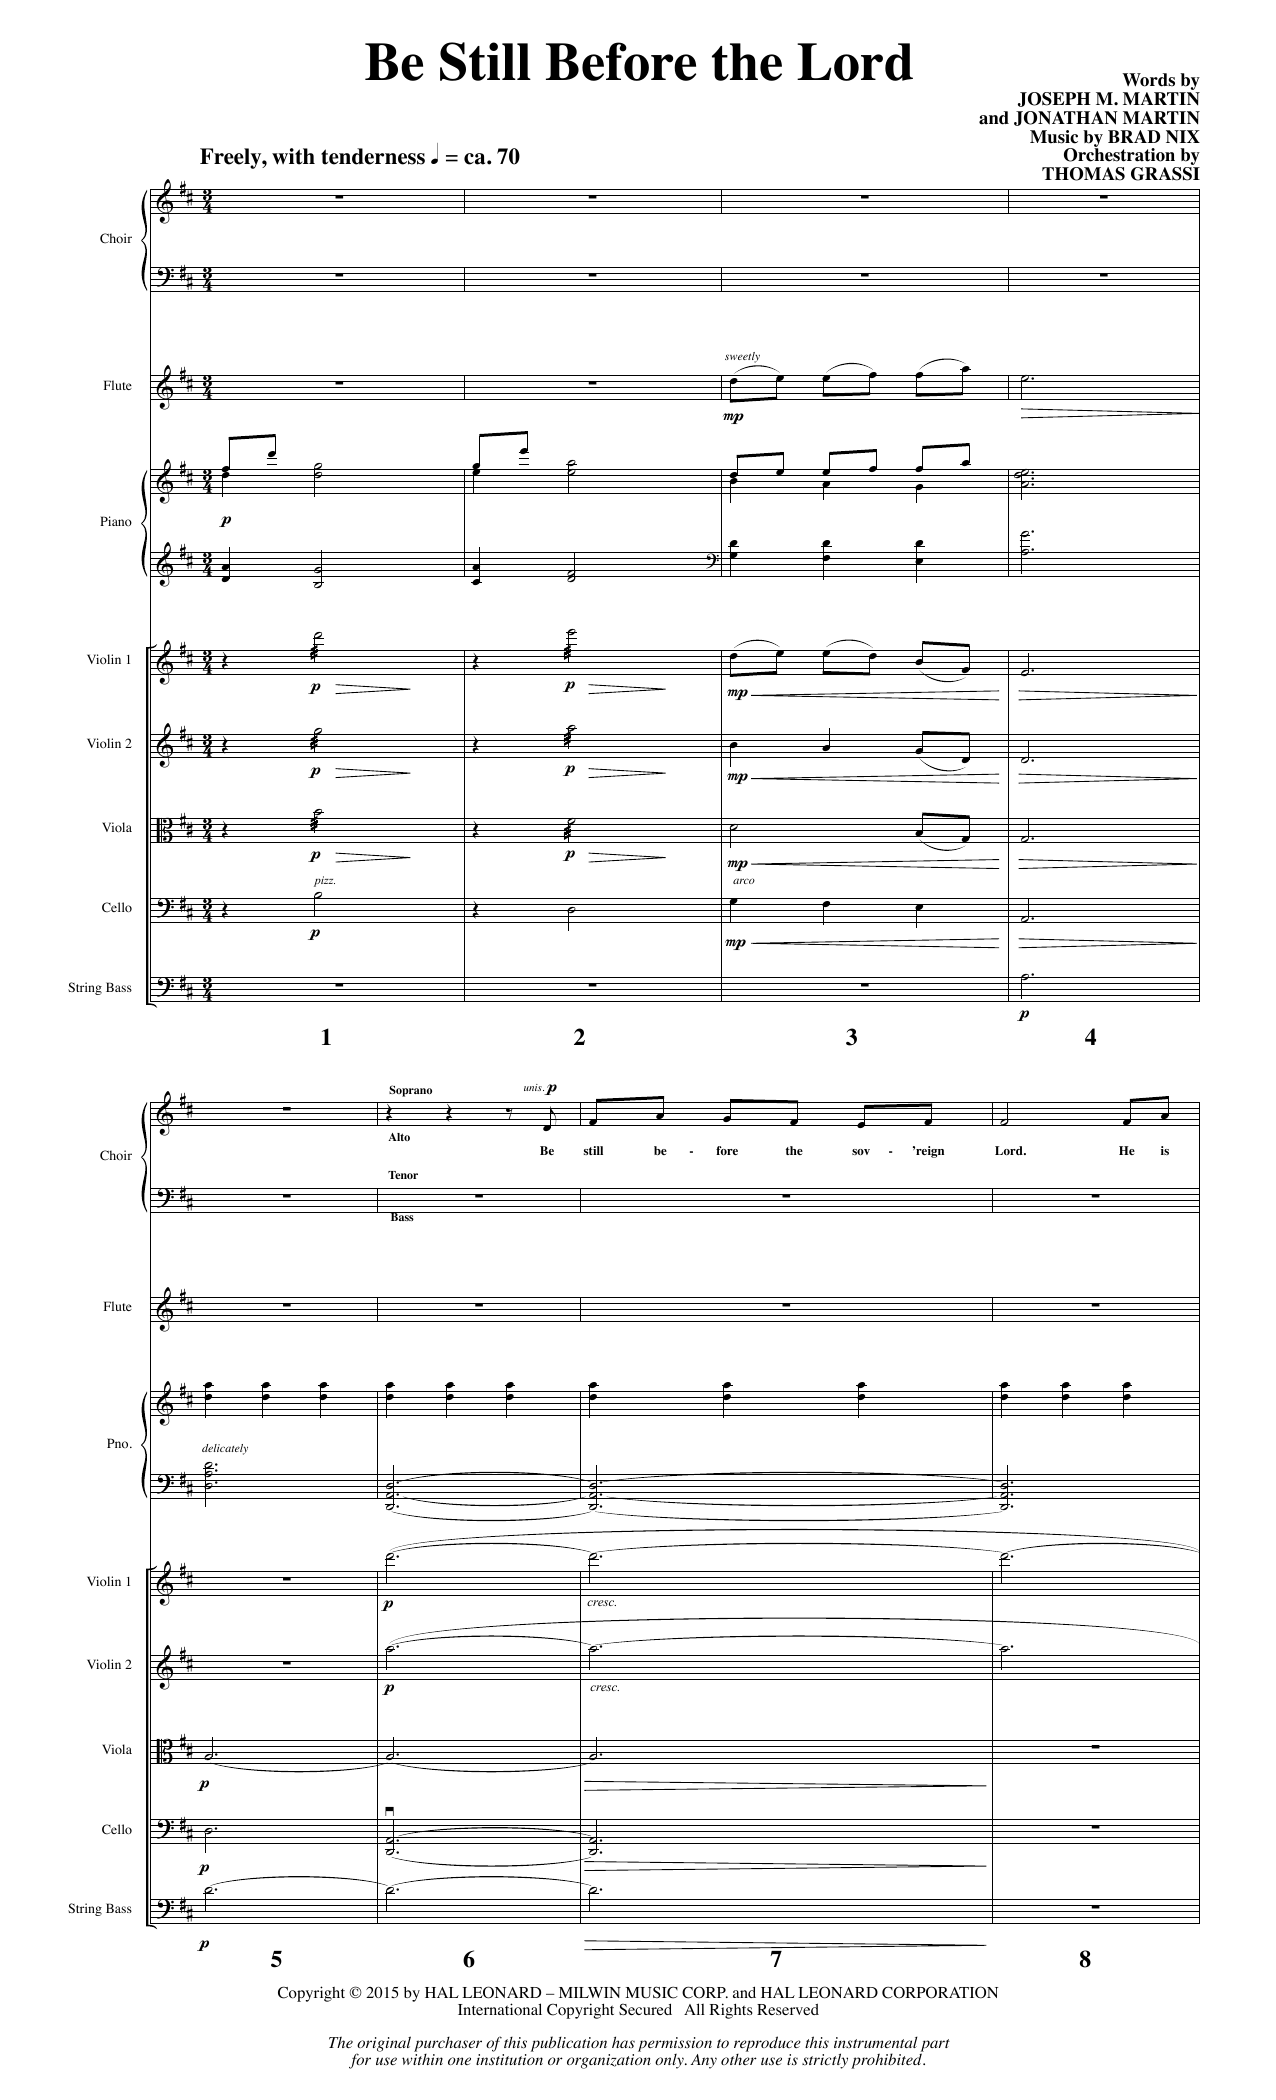 Be Still Before the Lord (COMPLETE) sheet music for orchestra/band by Brad Nix, Jonathan Martin and Joseph M. Martin. Score Image Preview.